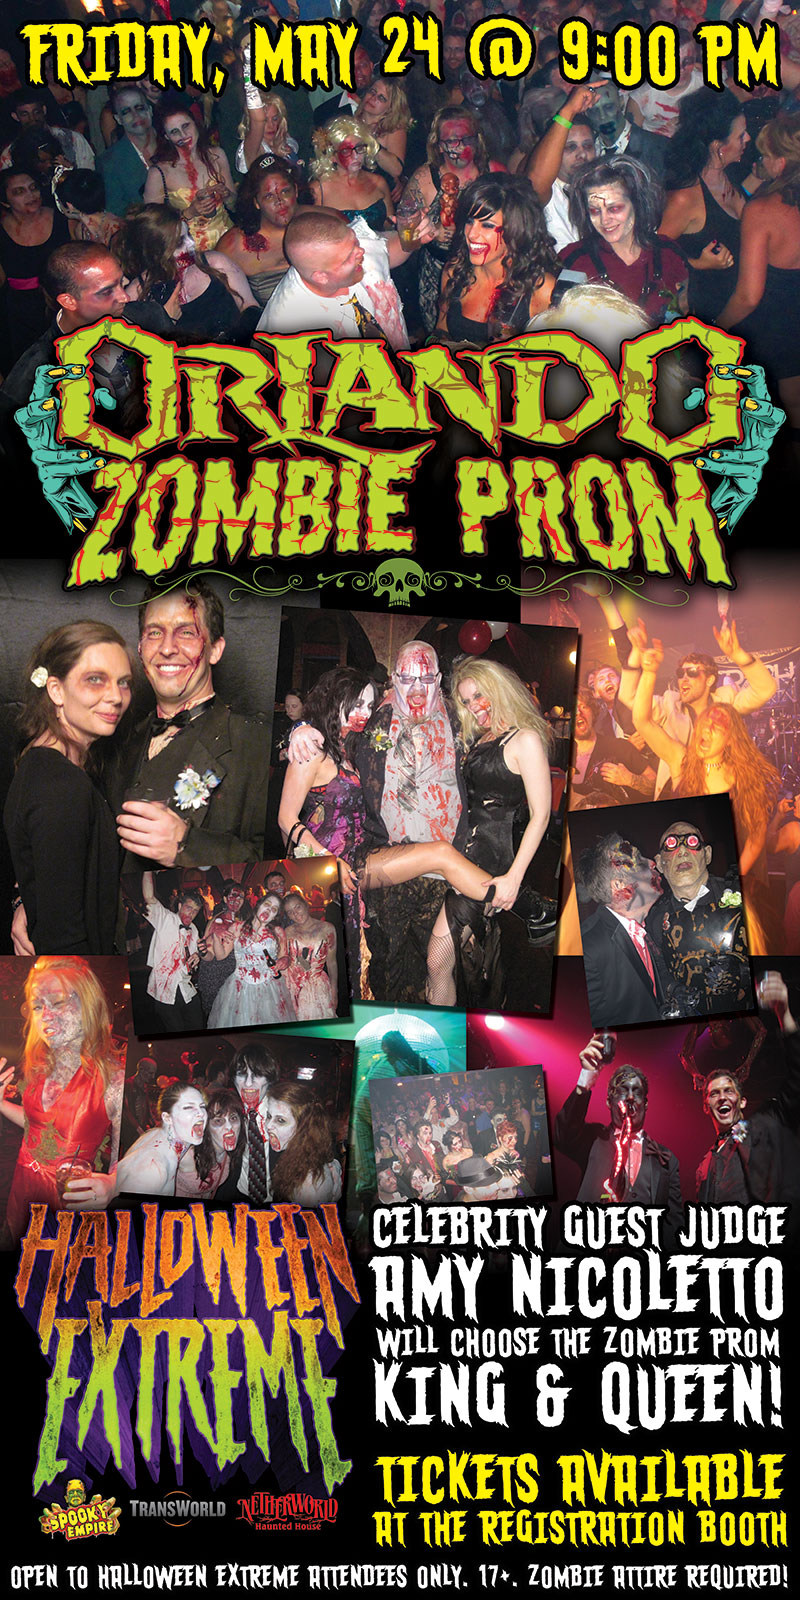 Orlando Zombie Prom